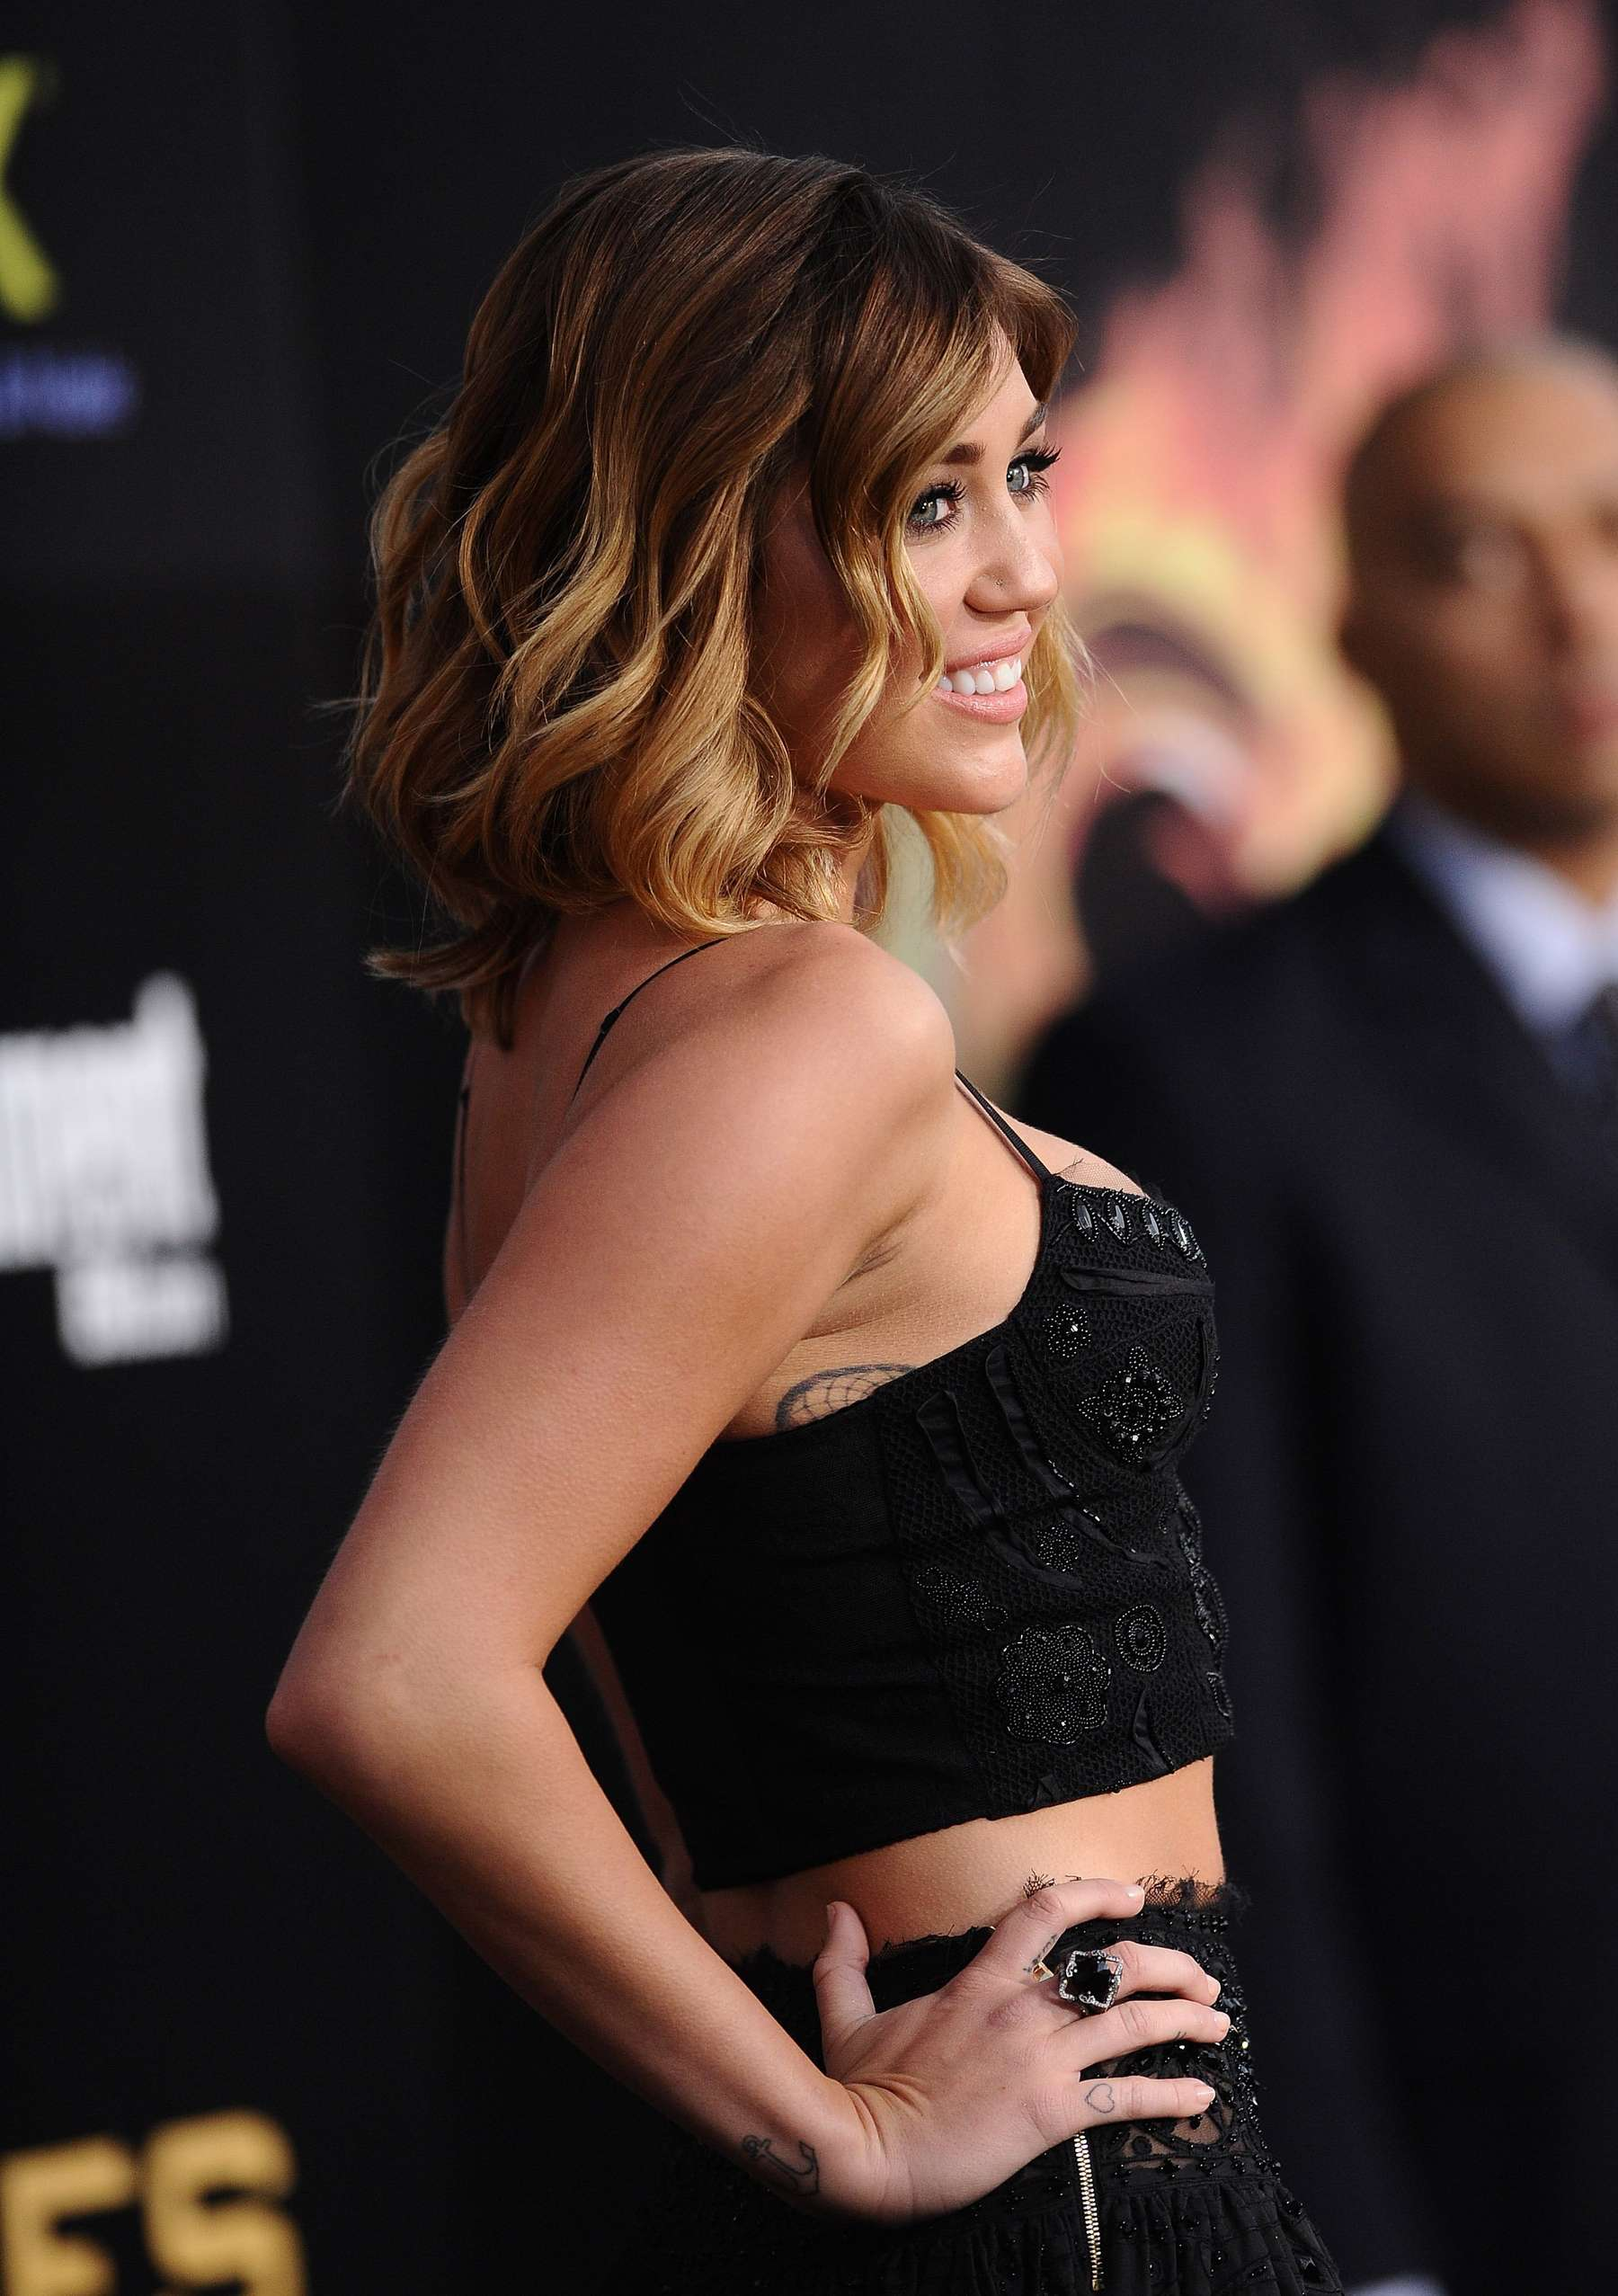 Miley Cyrus 2012 : Miley Cyrus shows big cleavage at The Hunger Games-23